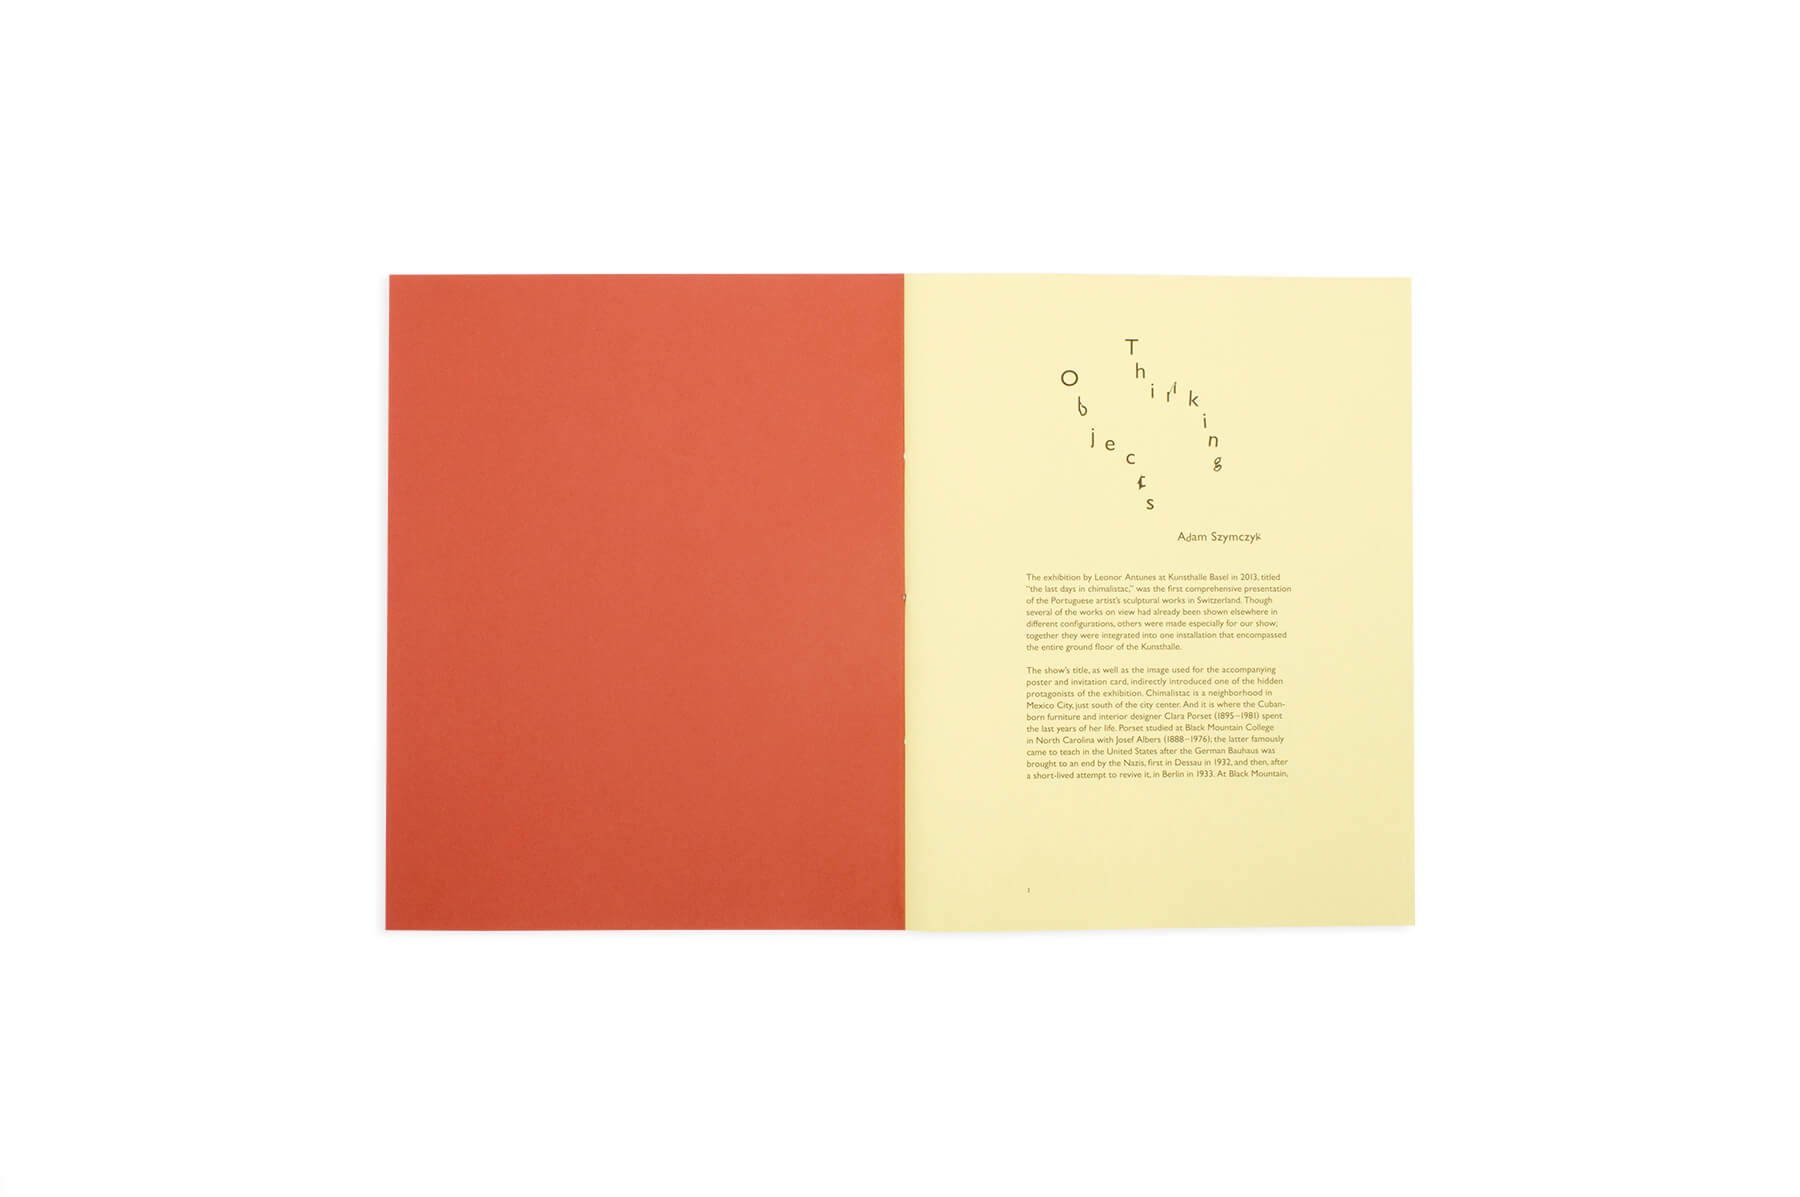 Product image of Leonor Antunes: the last days in chimalistac